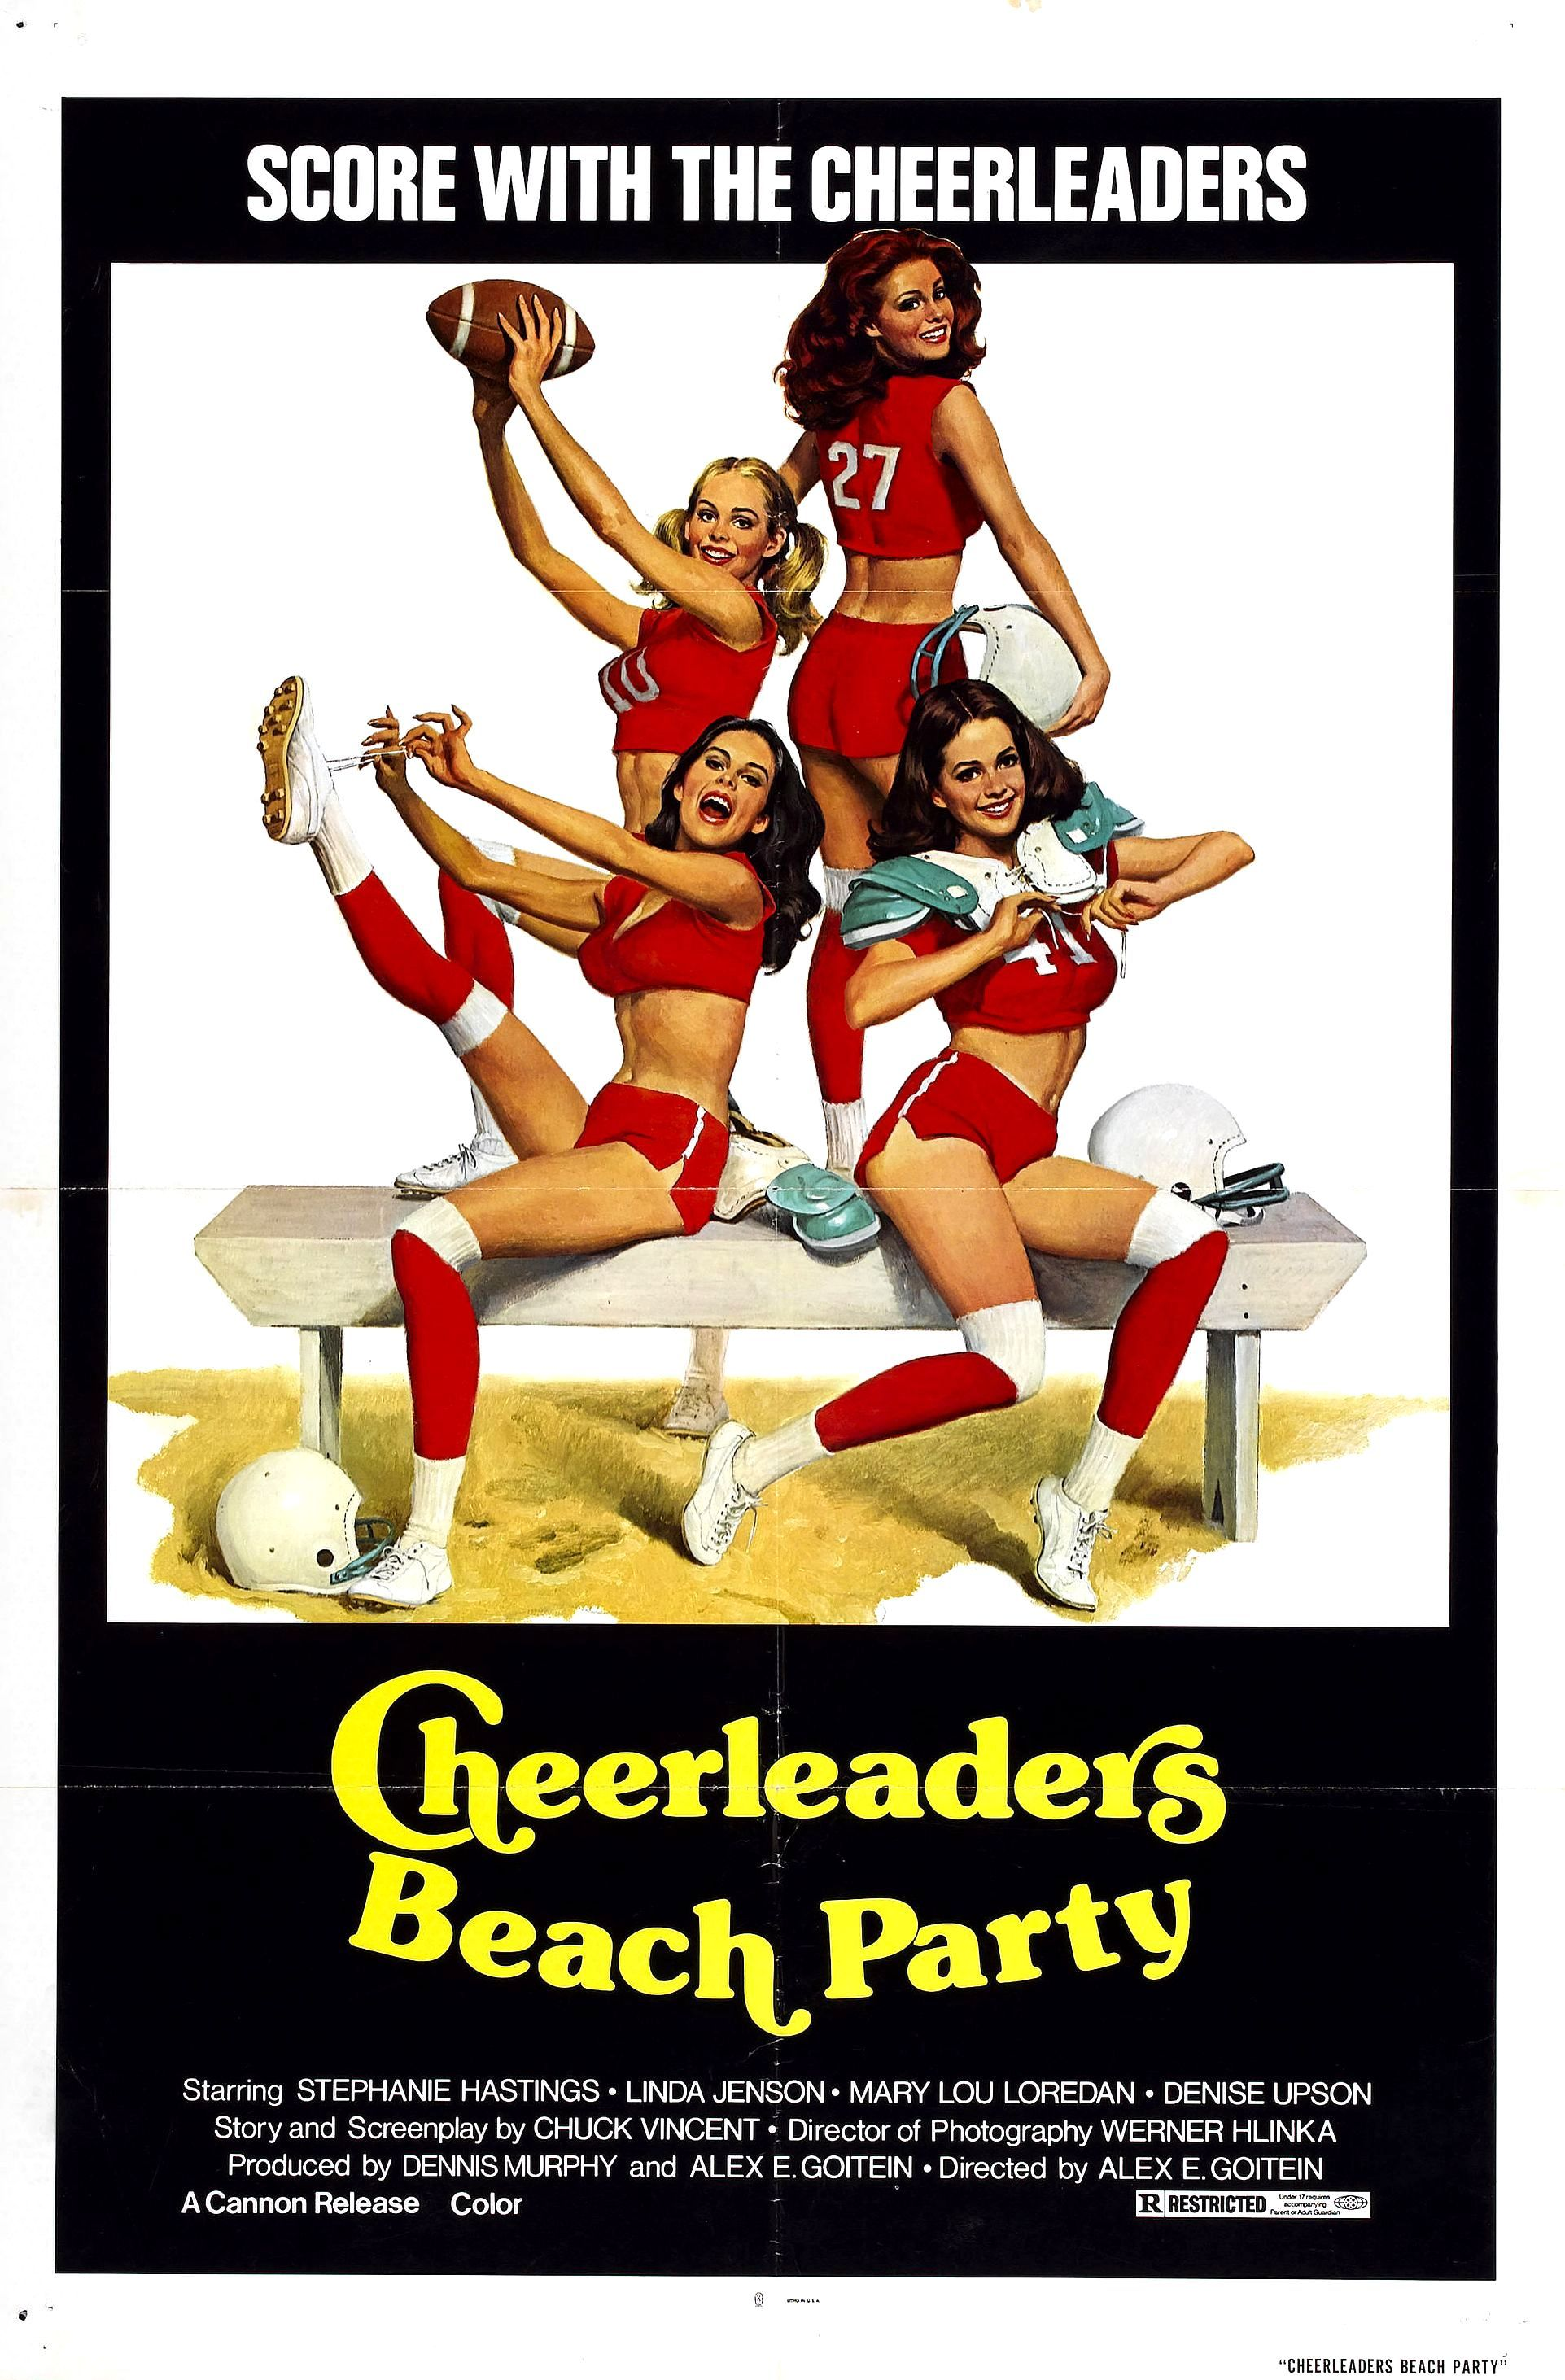 annette funicello beach movies - Cheerleaders Beach Party posters for sale online. Buy Cheerleaders Beach  Party movie posters from Movie Poster Shop. We're your movie poster source  for new ...